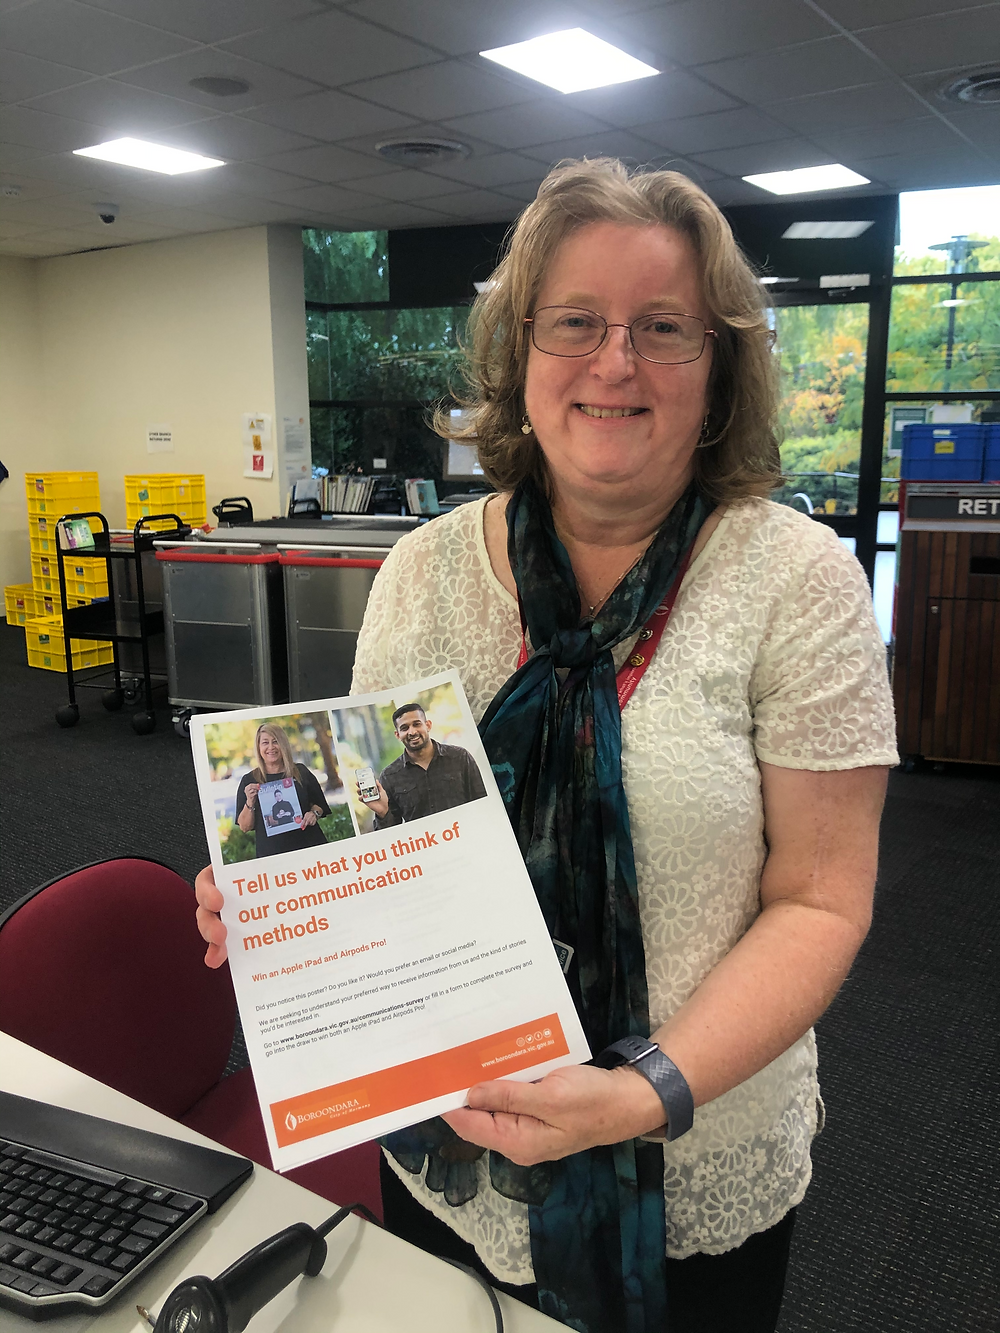 Cheryl at the Hawthorn Library, holding up the print version of the Communications Evaluation Survey at the front desk and smiling.